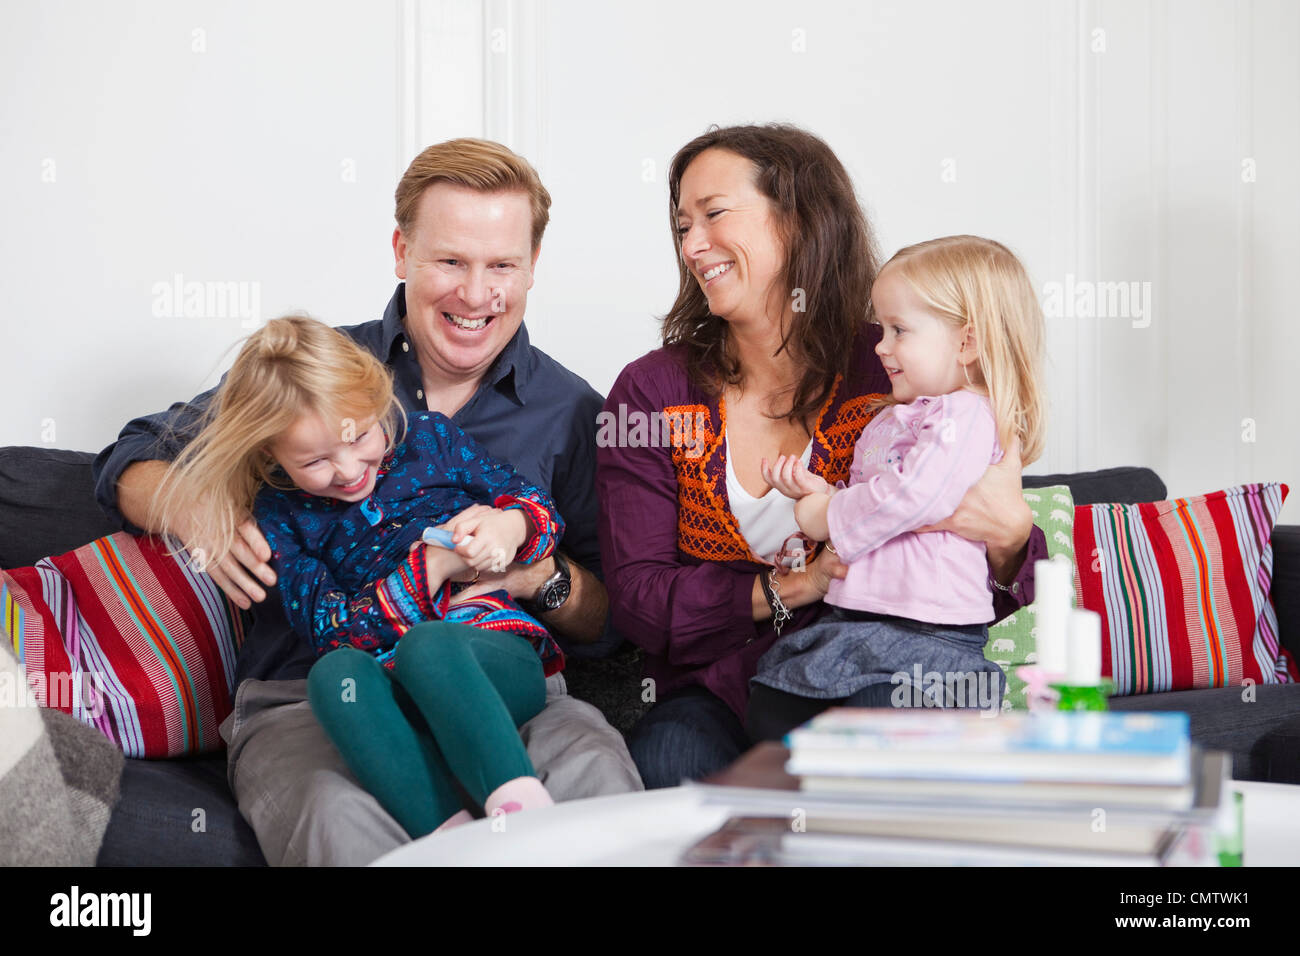 Smiling parents and daughters (2-4) in playful mood - Stock Image